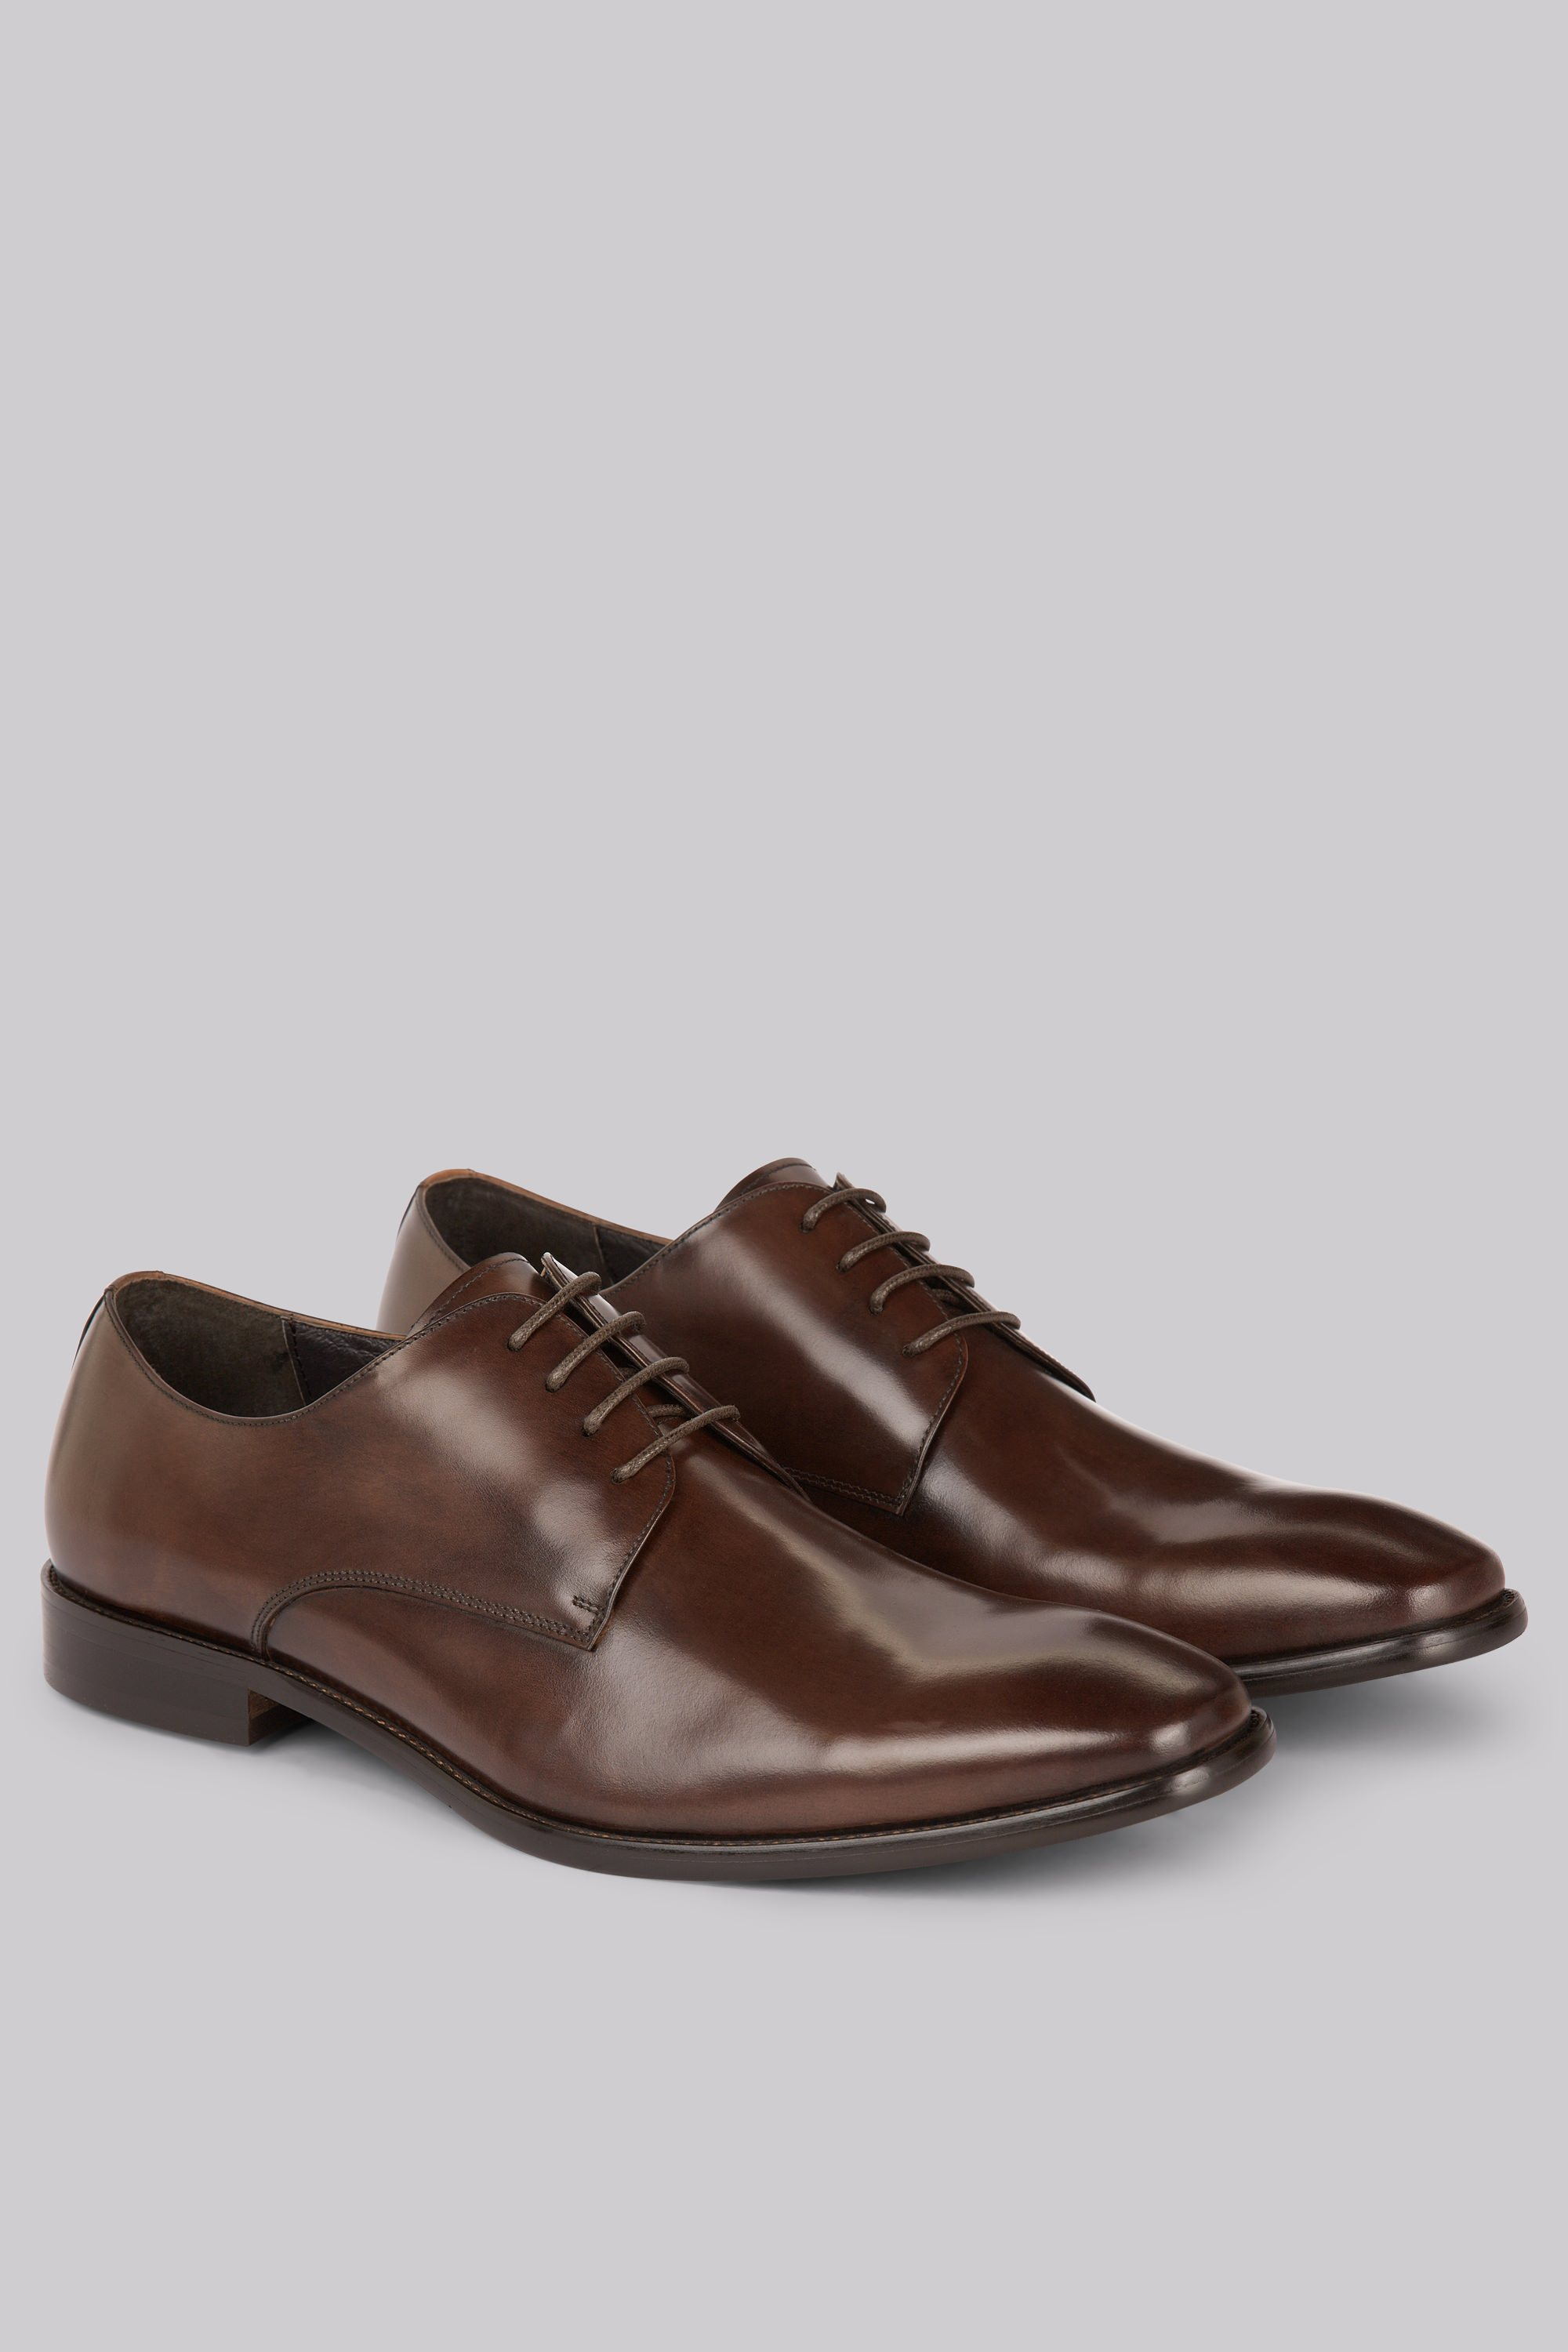 Moss Bros John White Moore Brown Derby Shoes